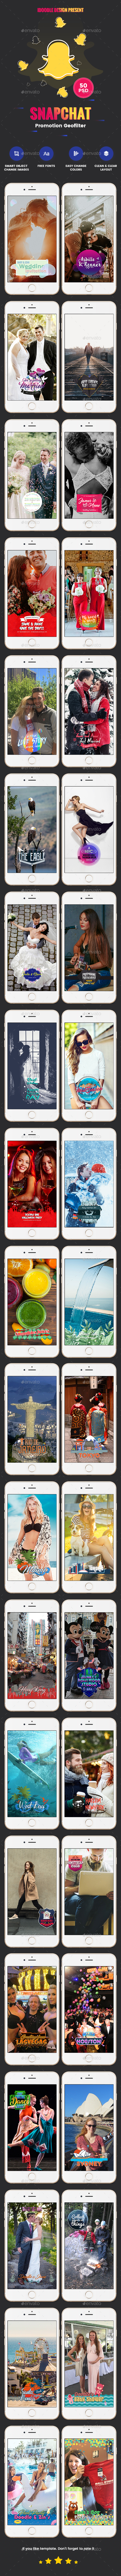 GraphicRiver Bundle Promotion Geofilters Snapchat 50 PSD 20957875